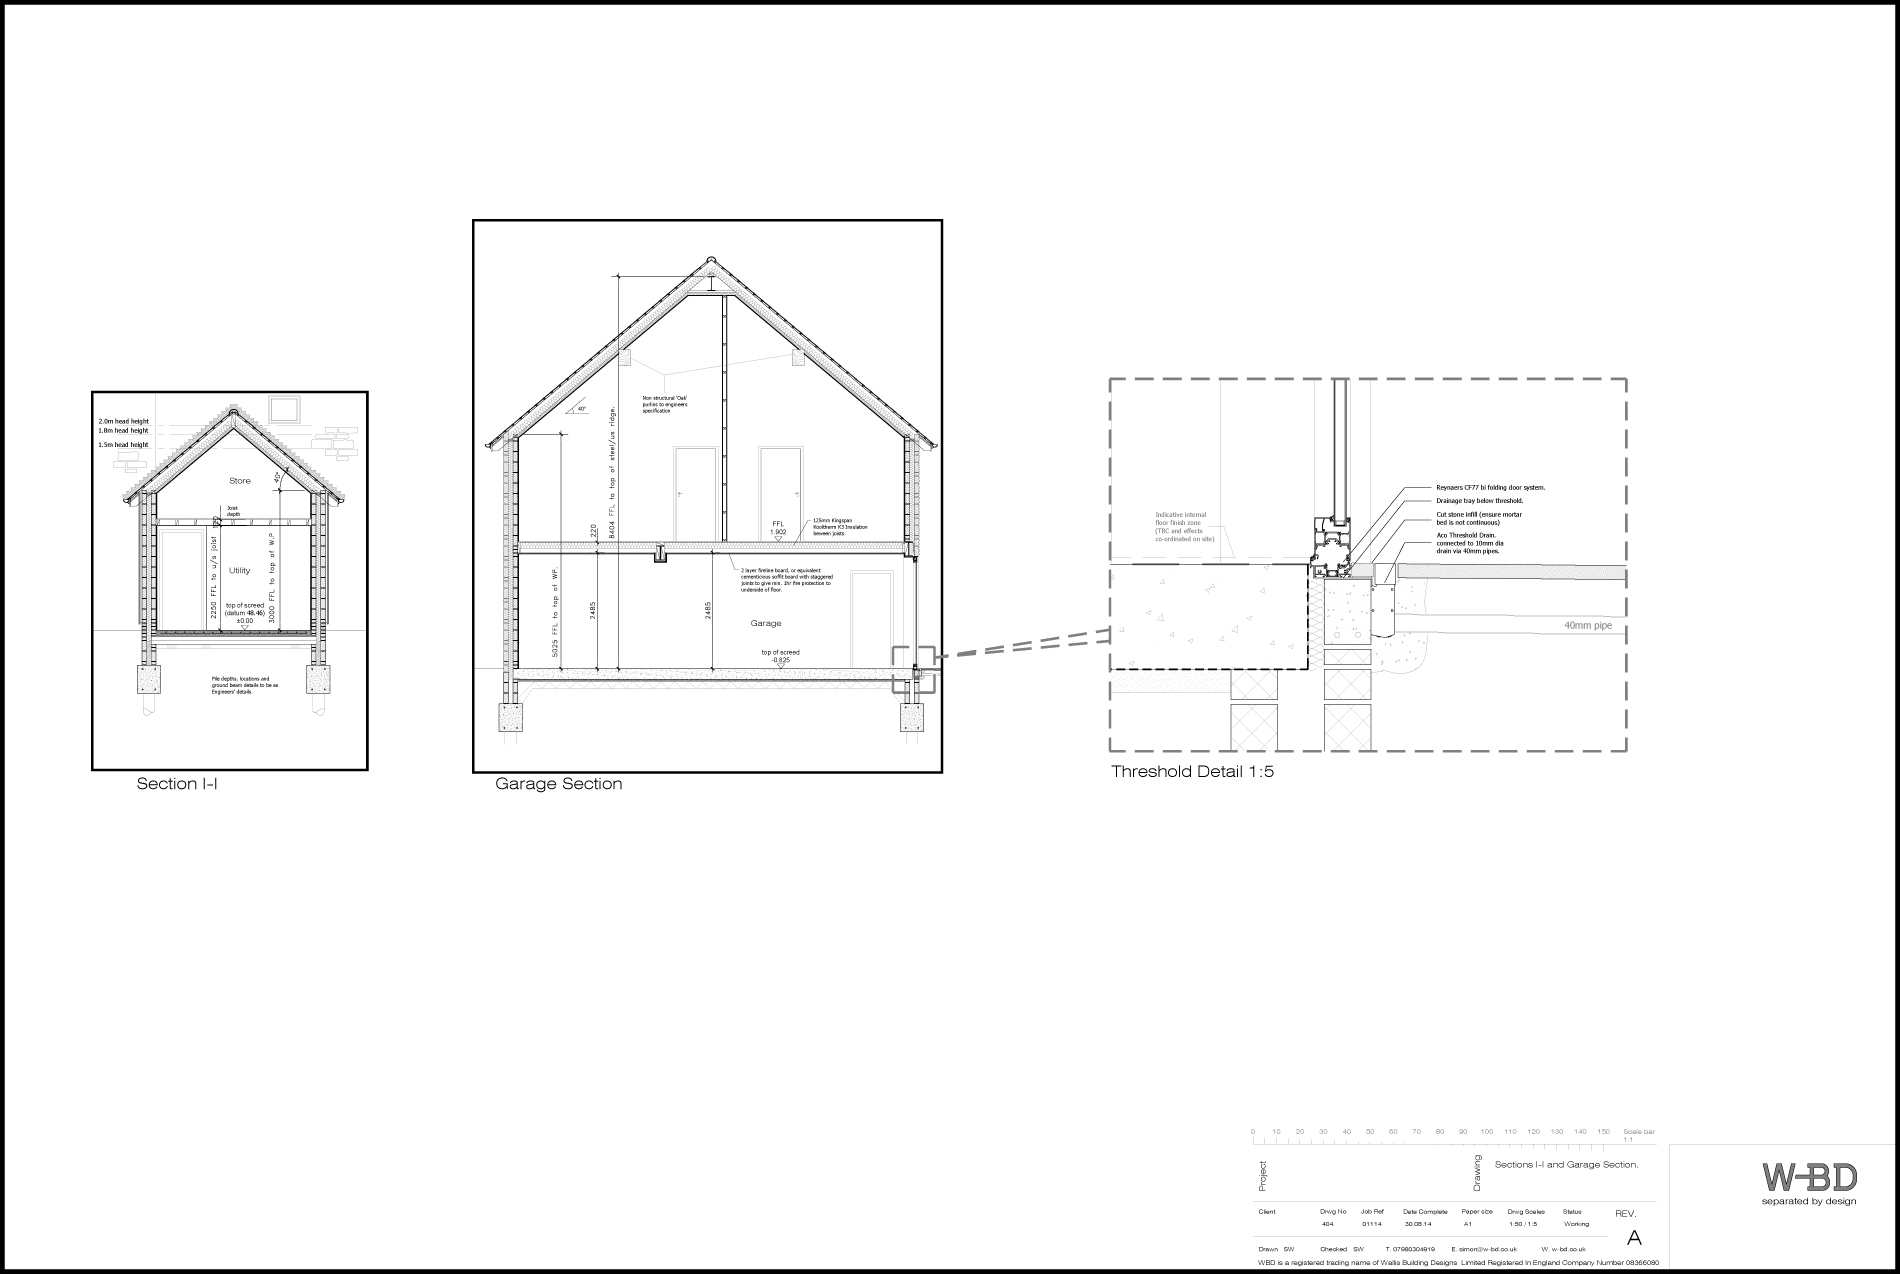 404 Section II and Garage architects drawing